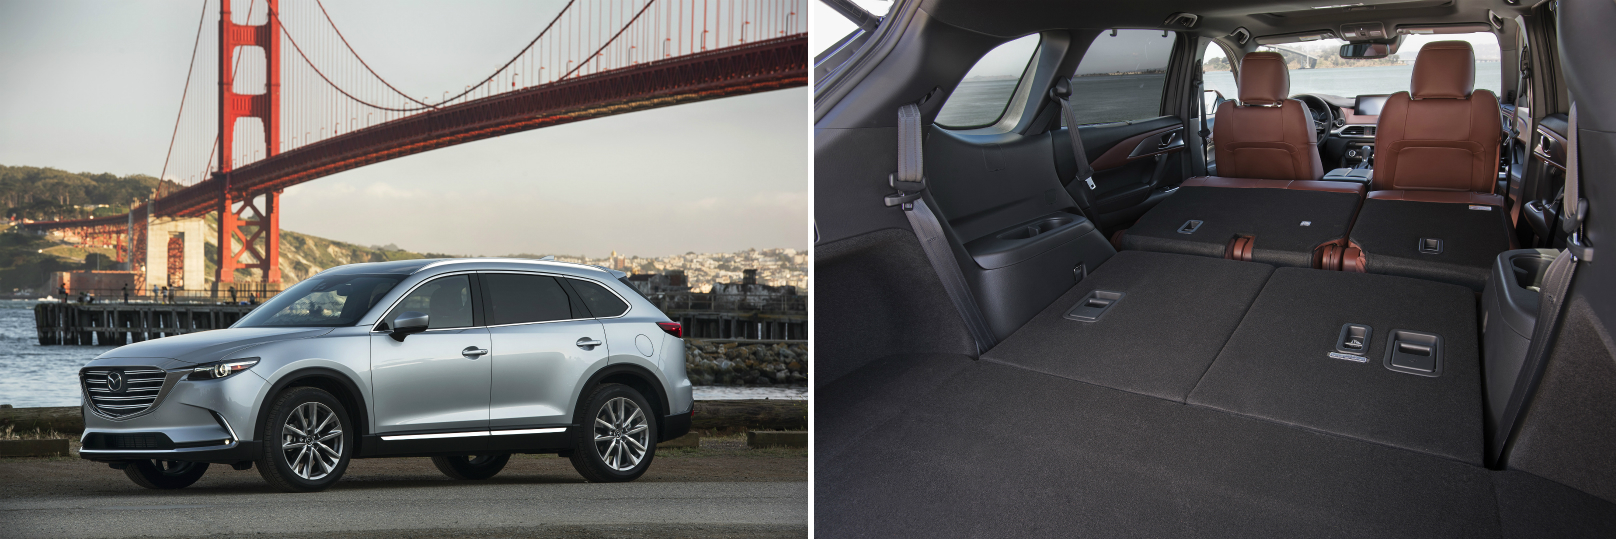 Mazda CX-9 Three-Row SUV